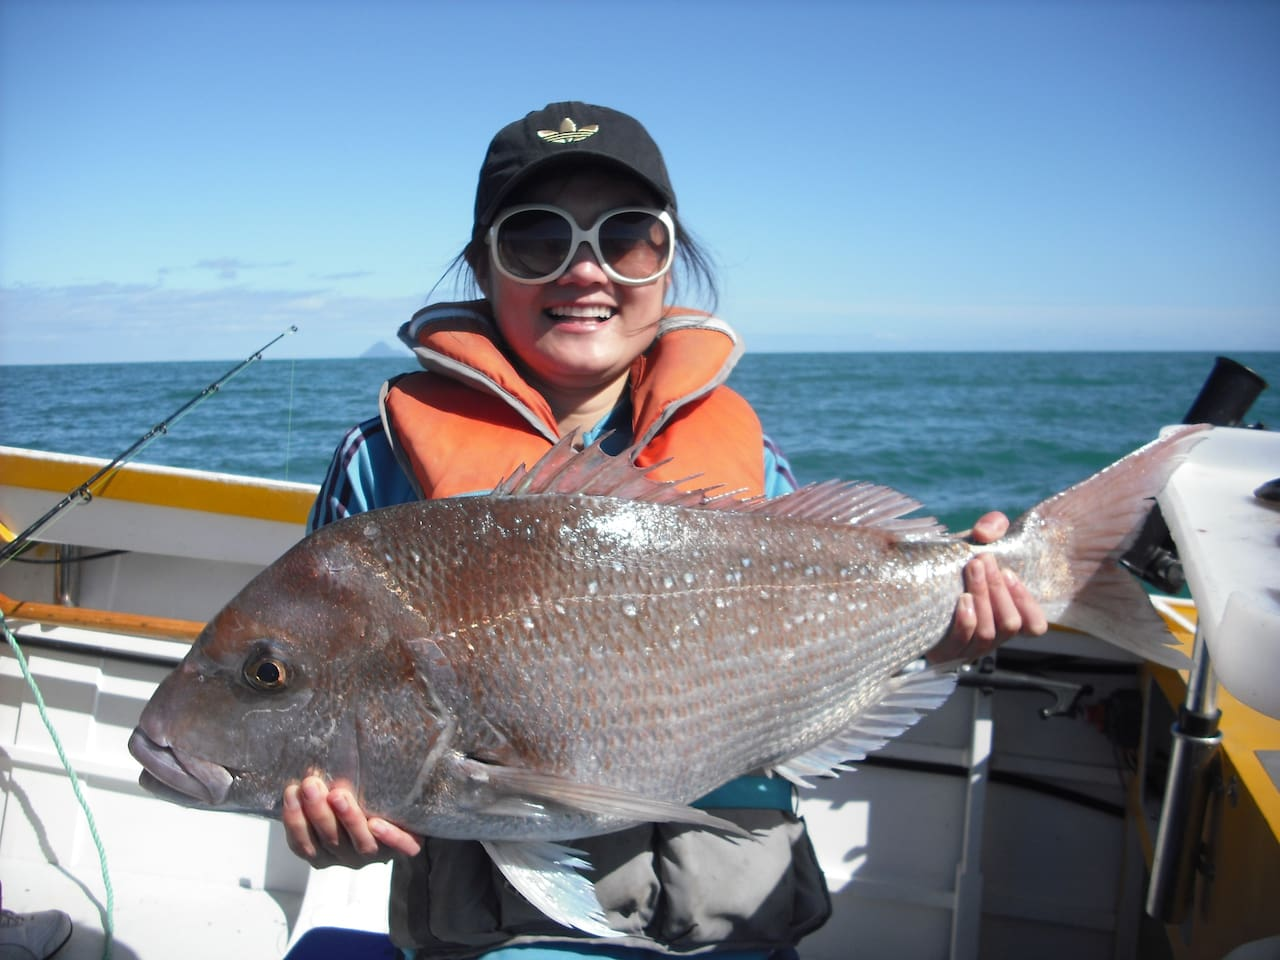 Want to catch big fish? Take a voyage!